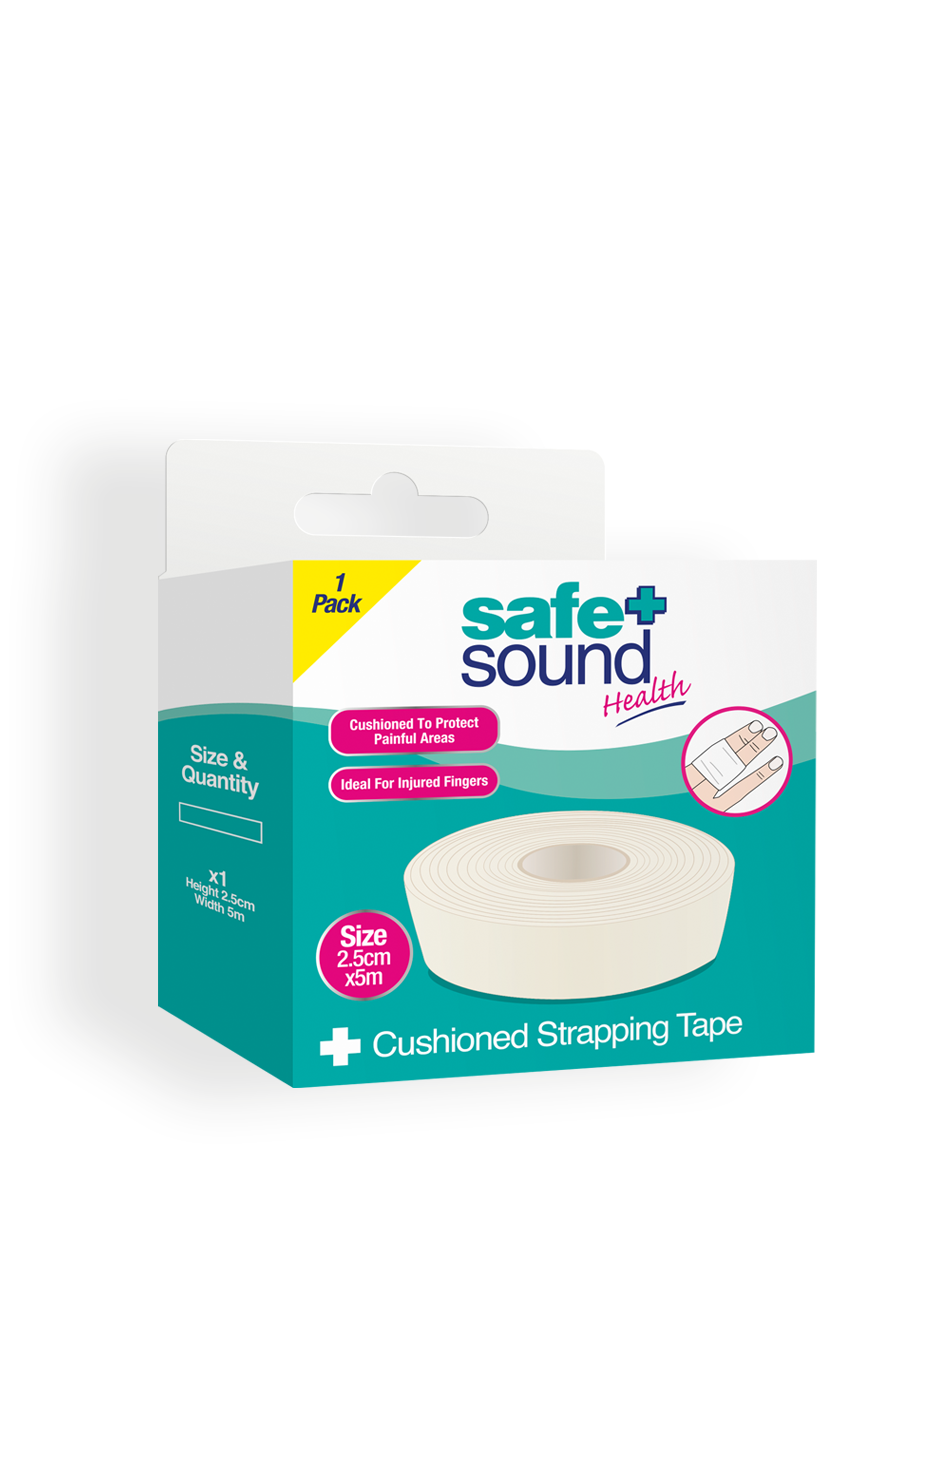 Safe and Sound Health's Cushioned strapping tape